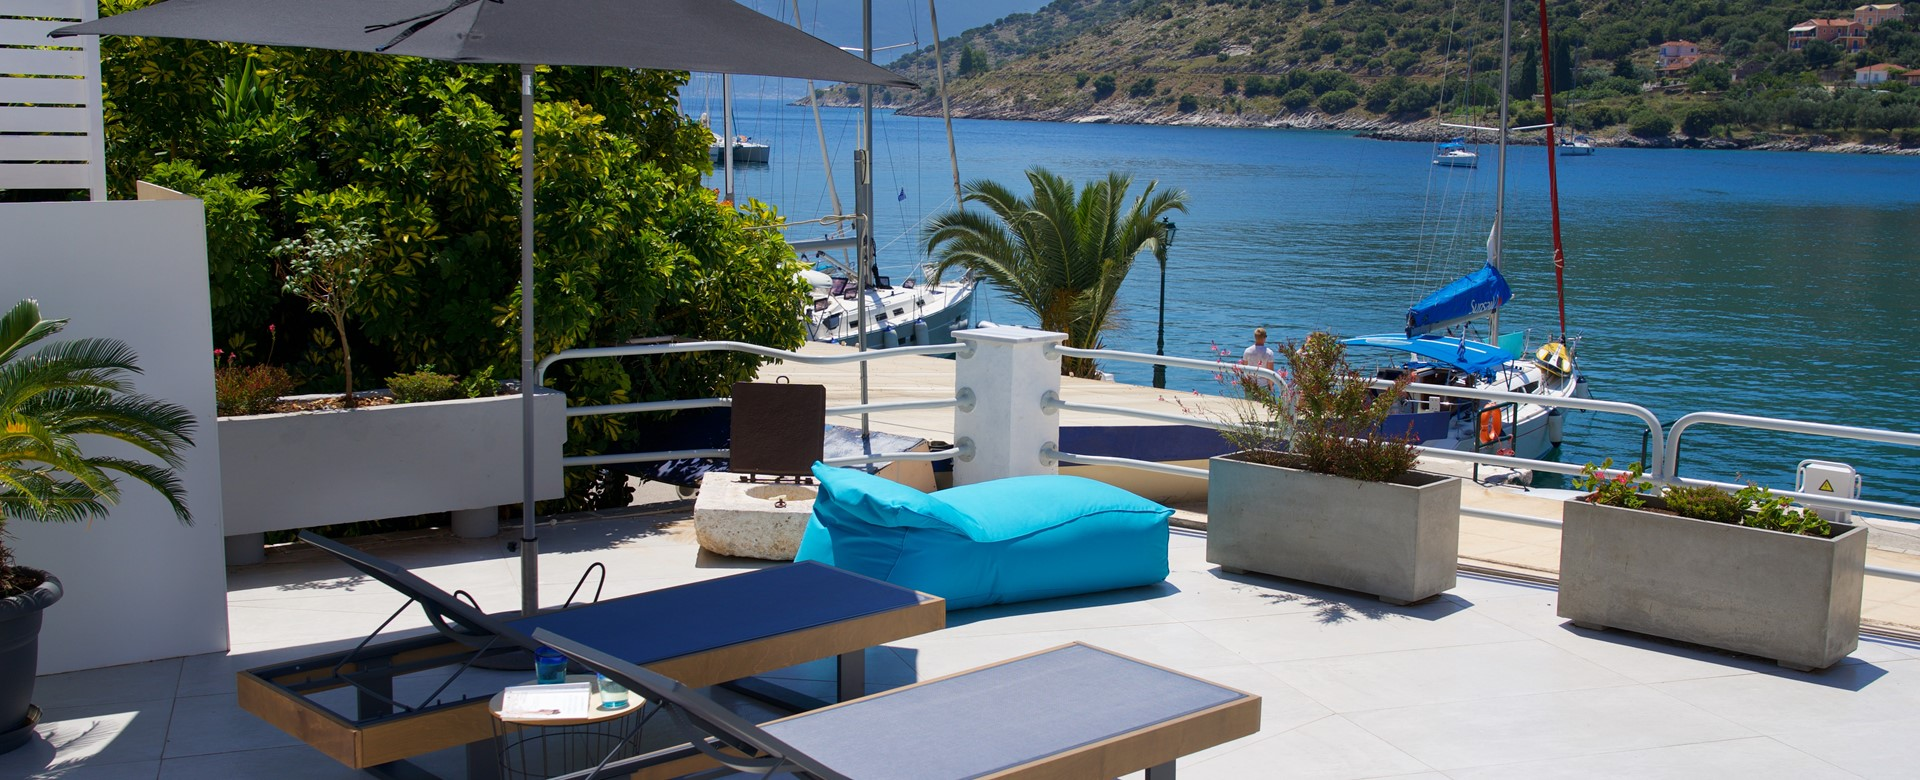 Sunbeds and lounging outside in the sun on the waterfront at Palm House Harbourfront Mansion, Agia Efimia, Kefalonia, Greek Islands